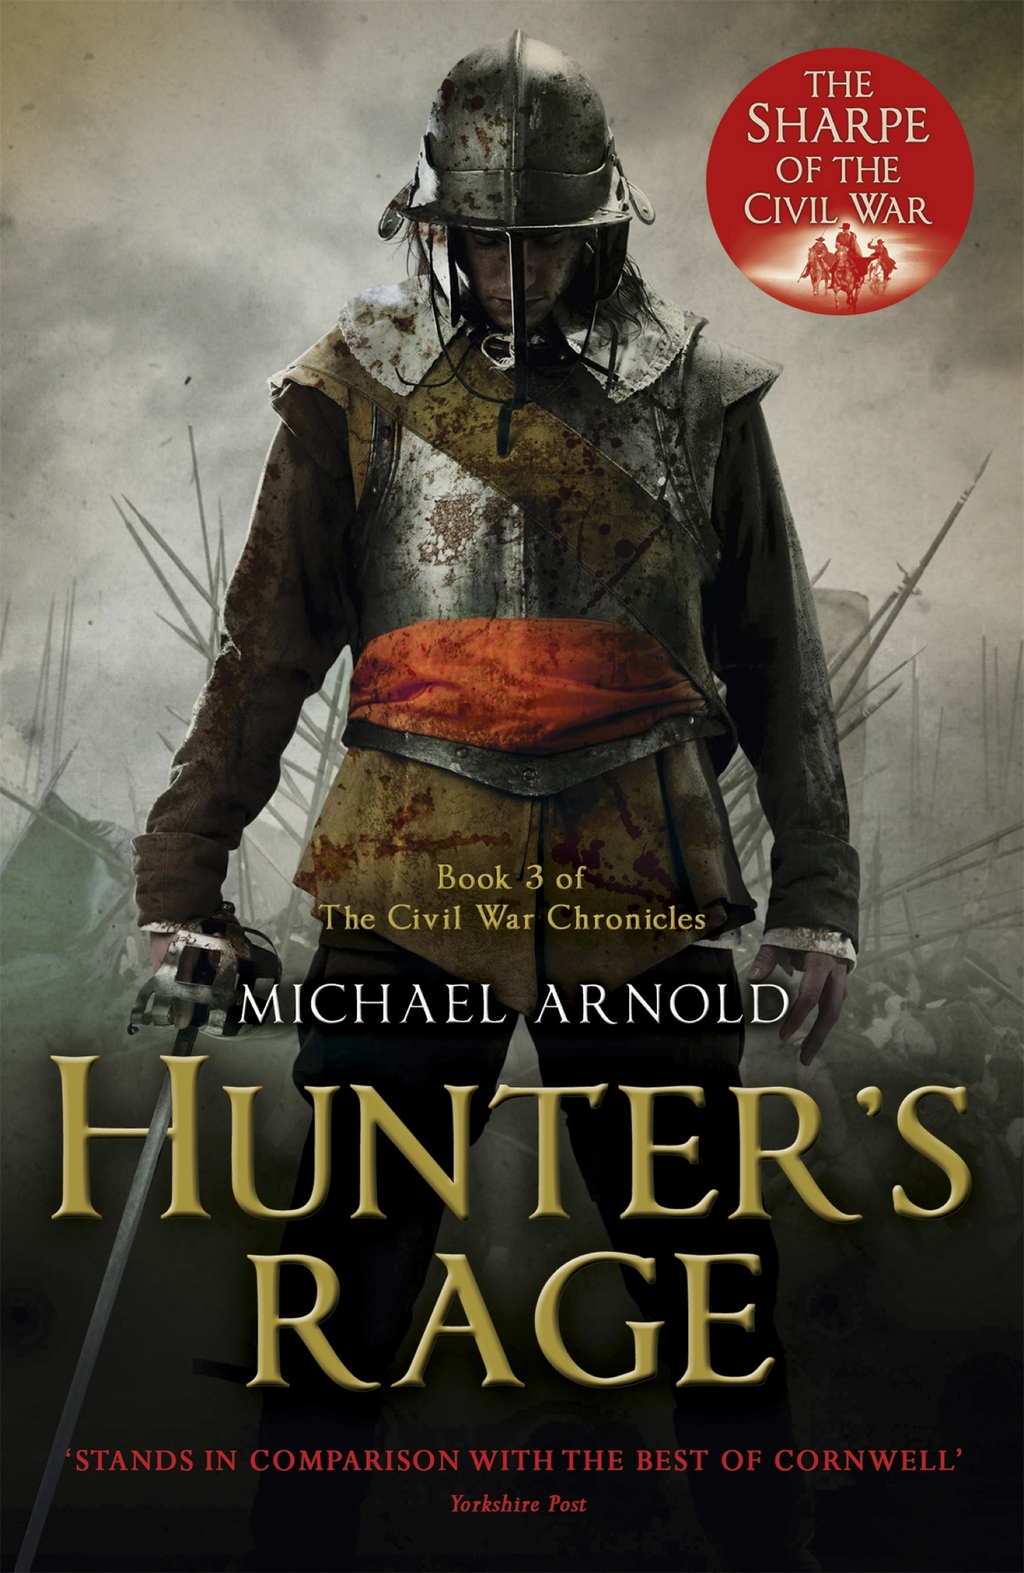 Hunter's Rage Book 3 of The Civil War Chronicles